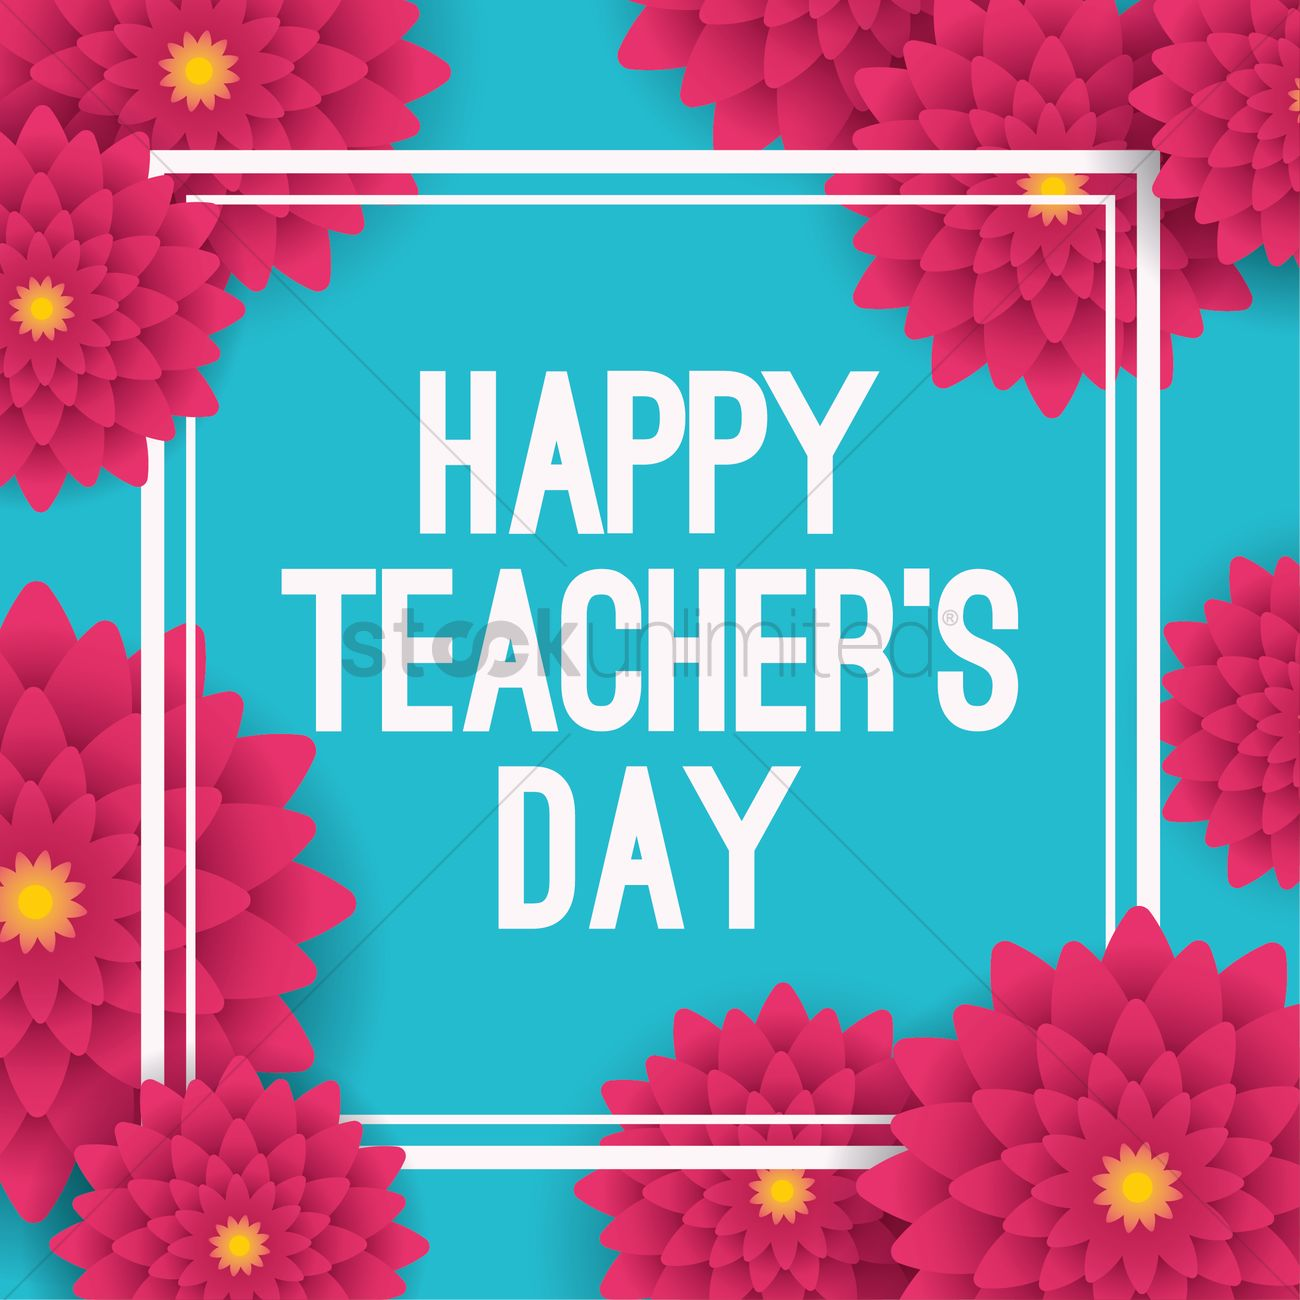 Happy teachers day design vector image 2007048 stockunlimited happy teachers day design vector graphic kristyandbryce Choice Image